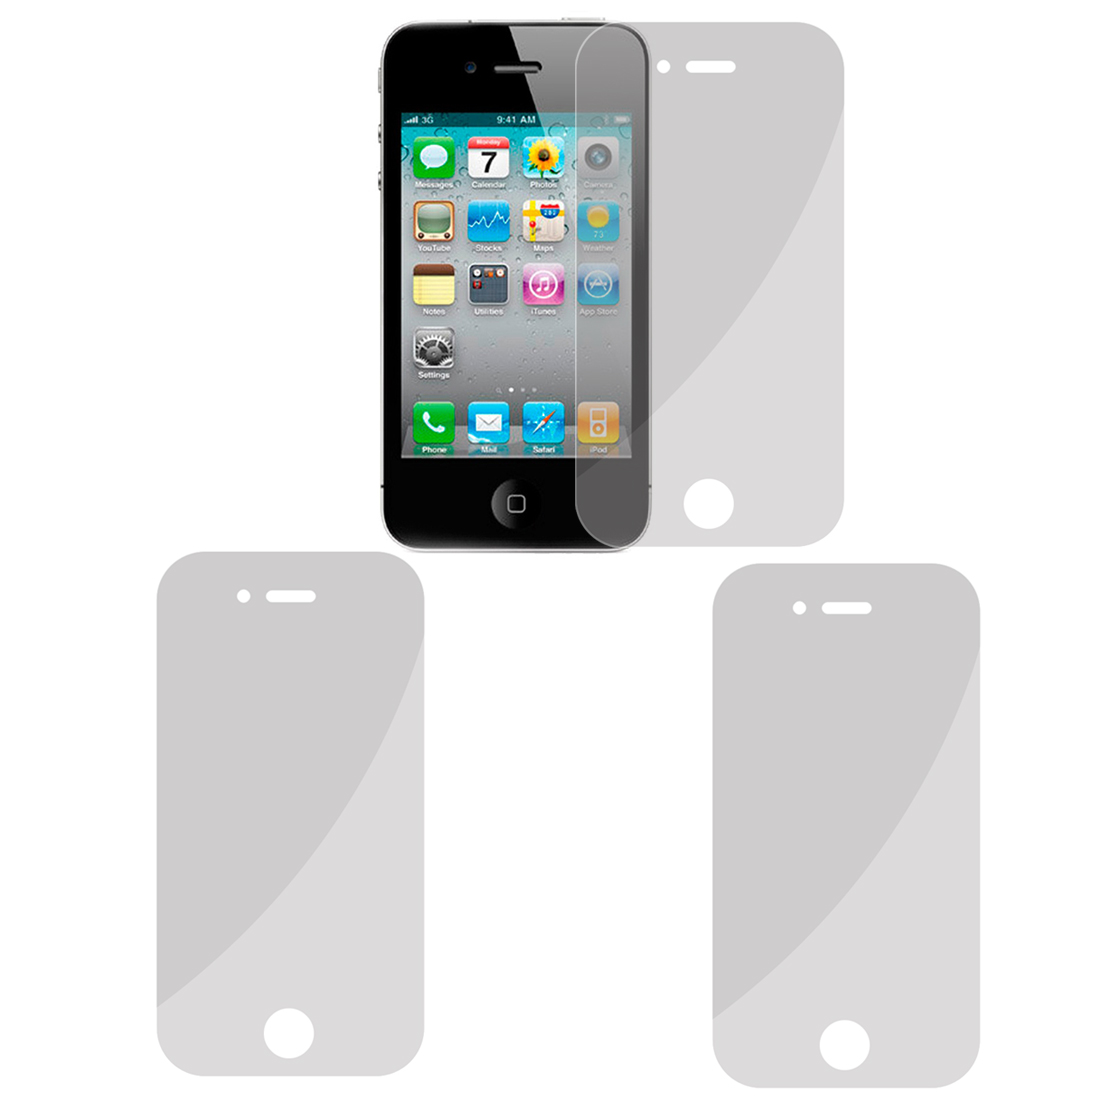 2 Pcs Clear LCD Screen Guard Film Protector for iPhone 4 4G 4S